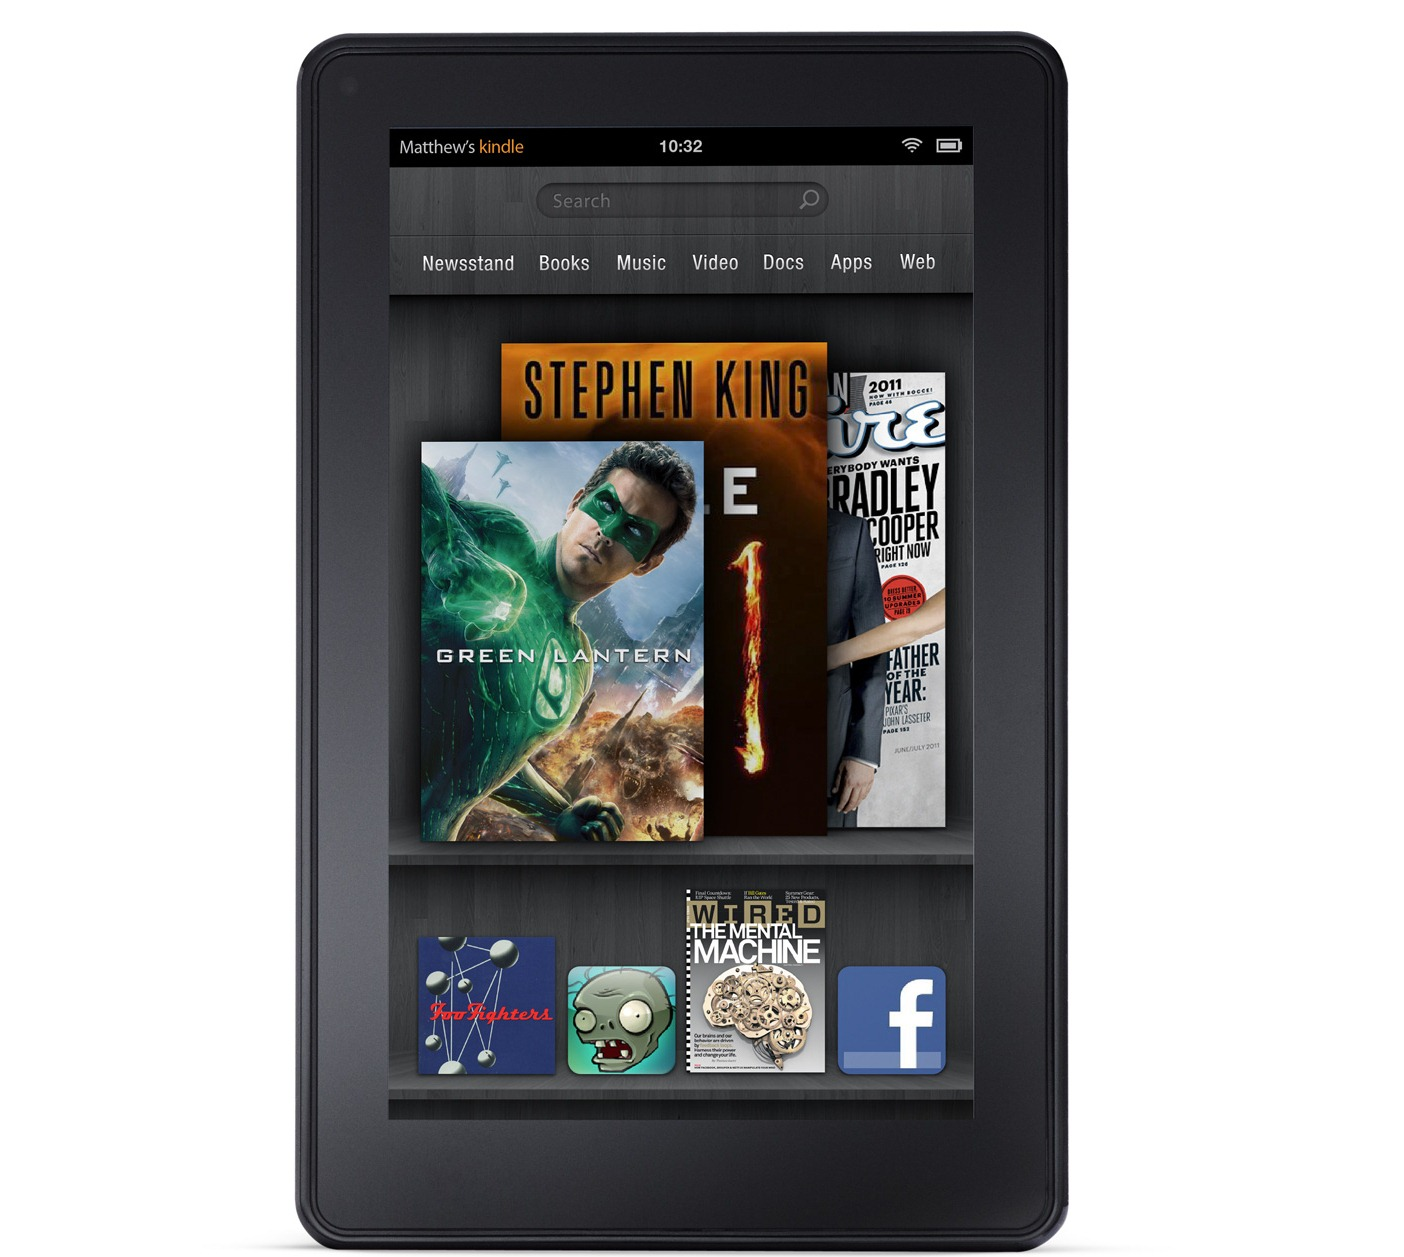 amazon kindle Archives - Android Police - Android news ... - photo#39